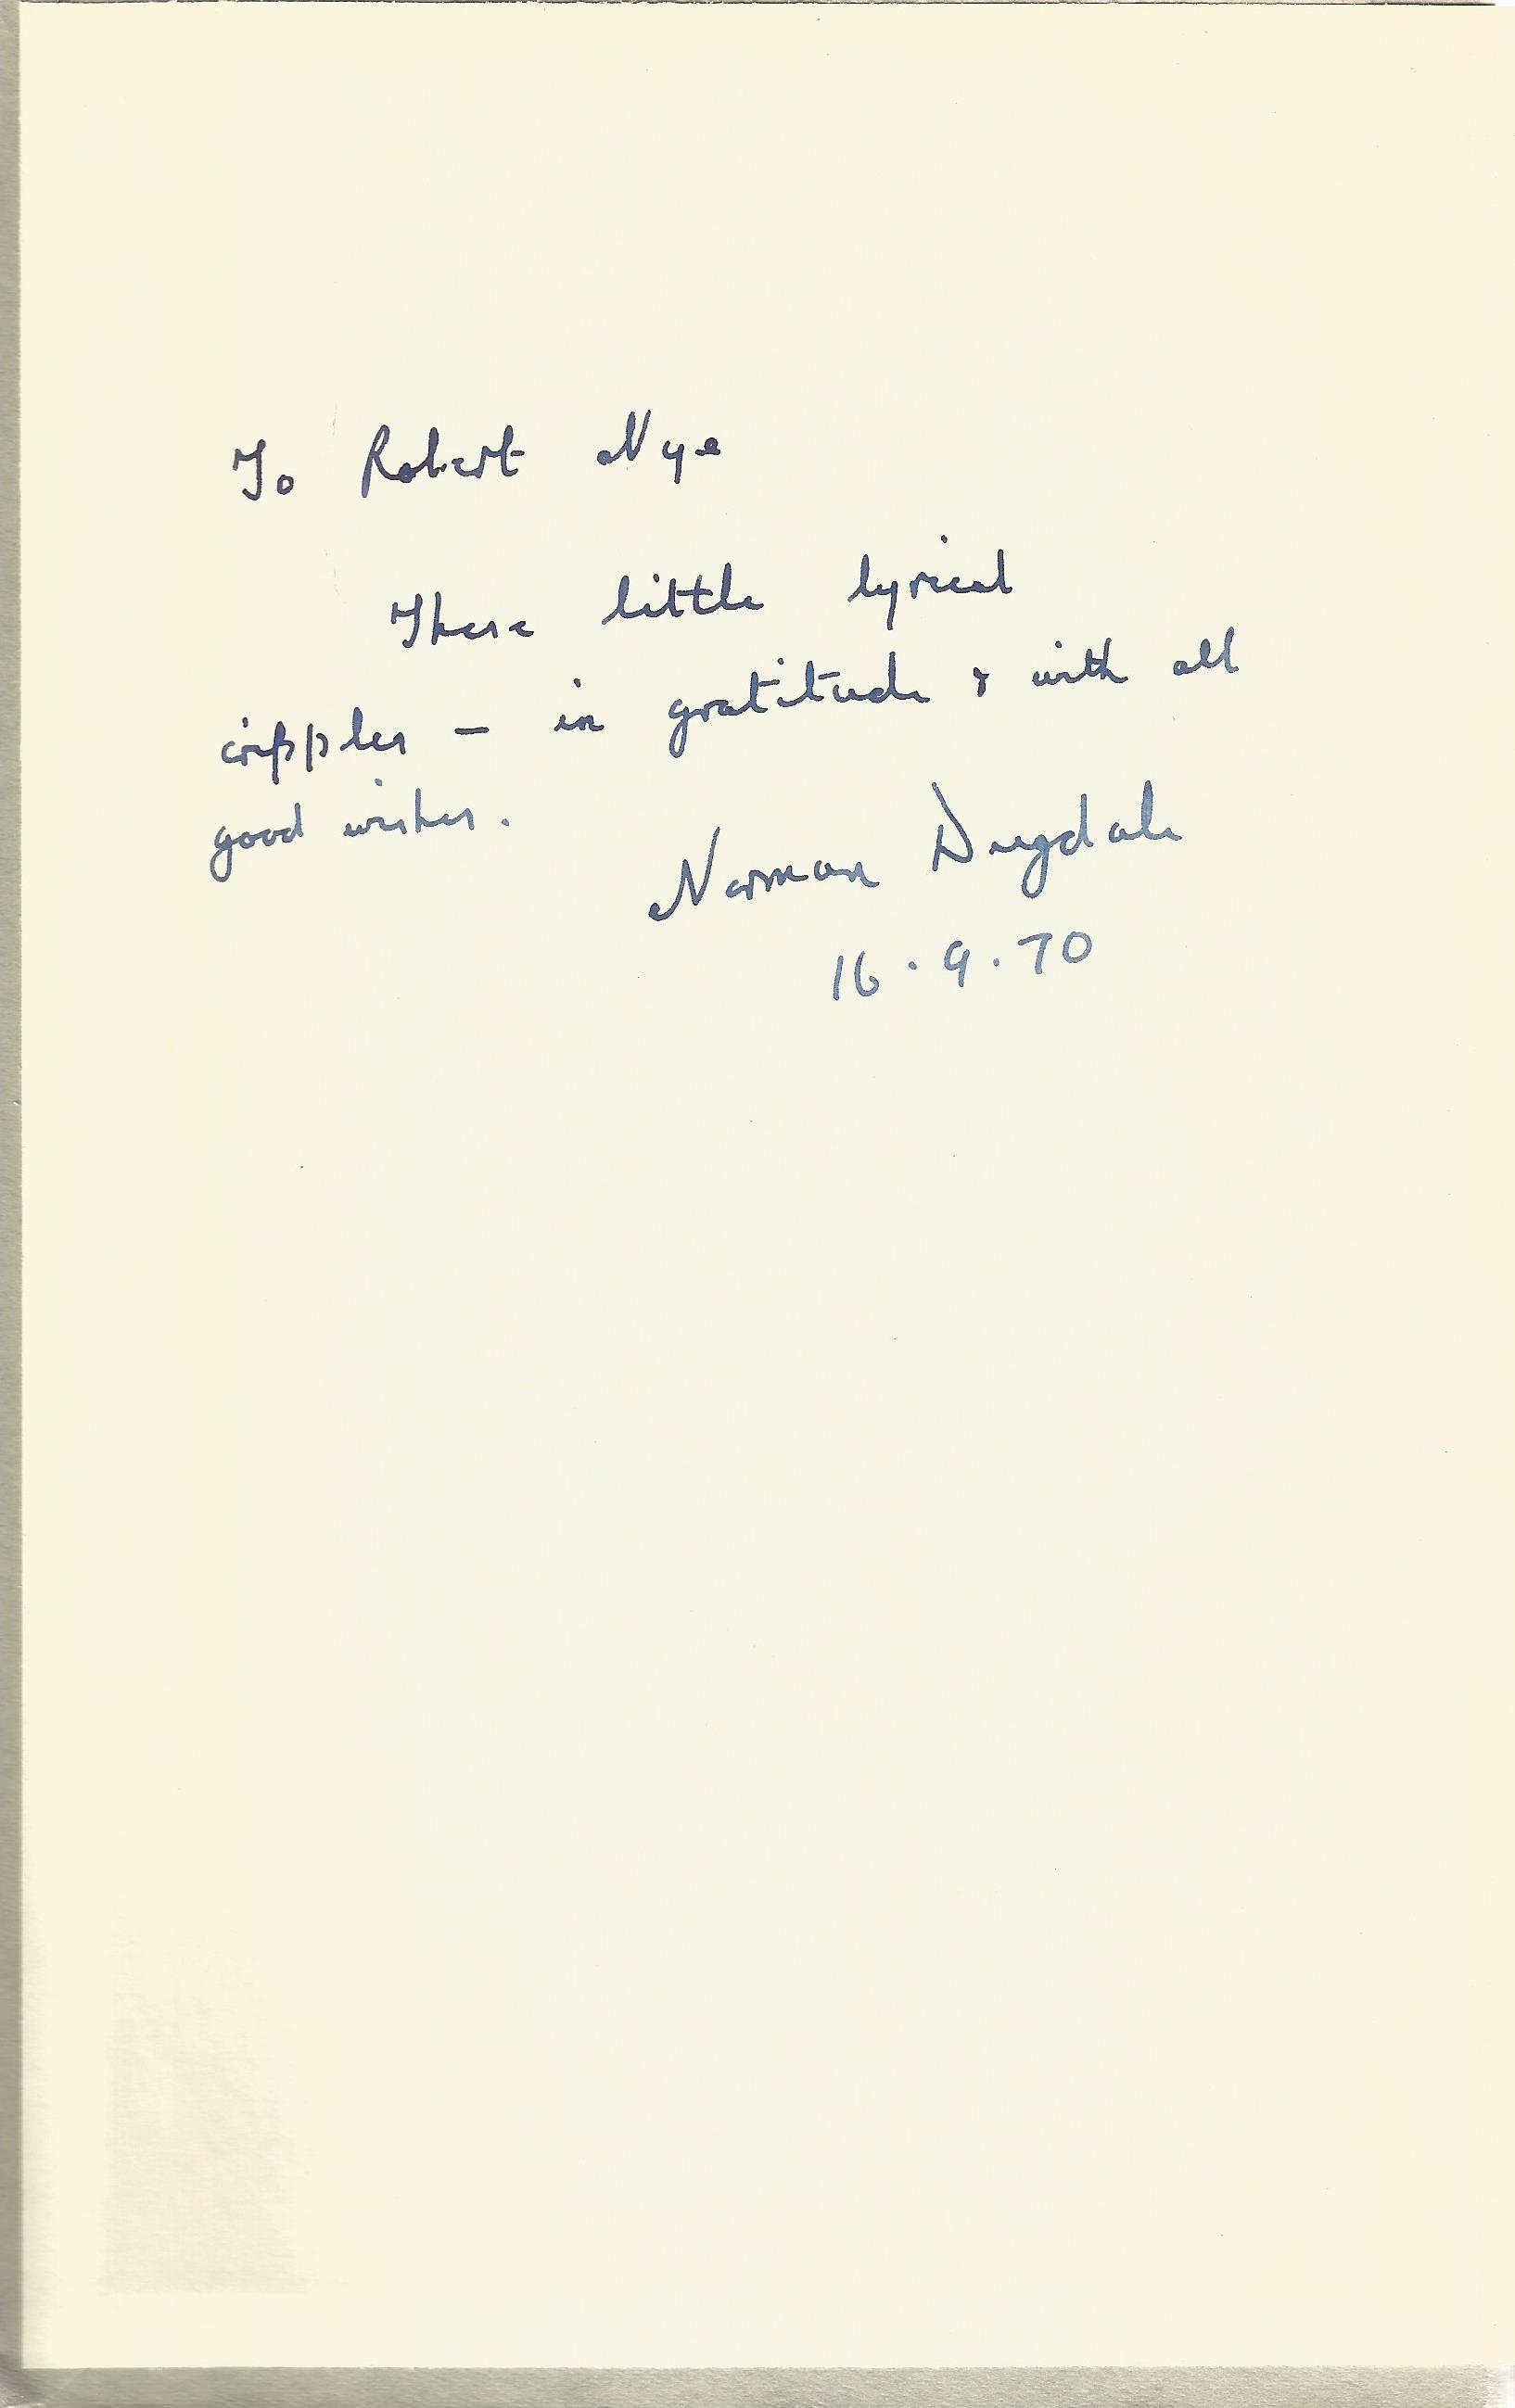 Norman Dugdale Hardback Book A Prospect of the W signed by the Author on the inside Front cover - Image 2 of 3